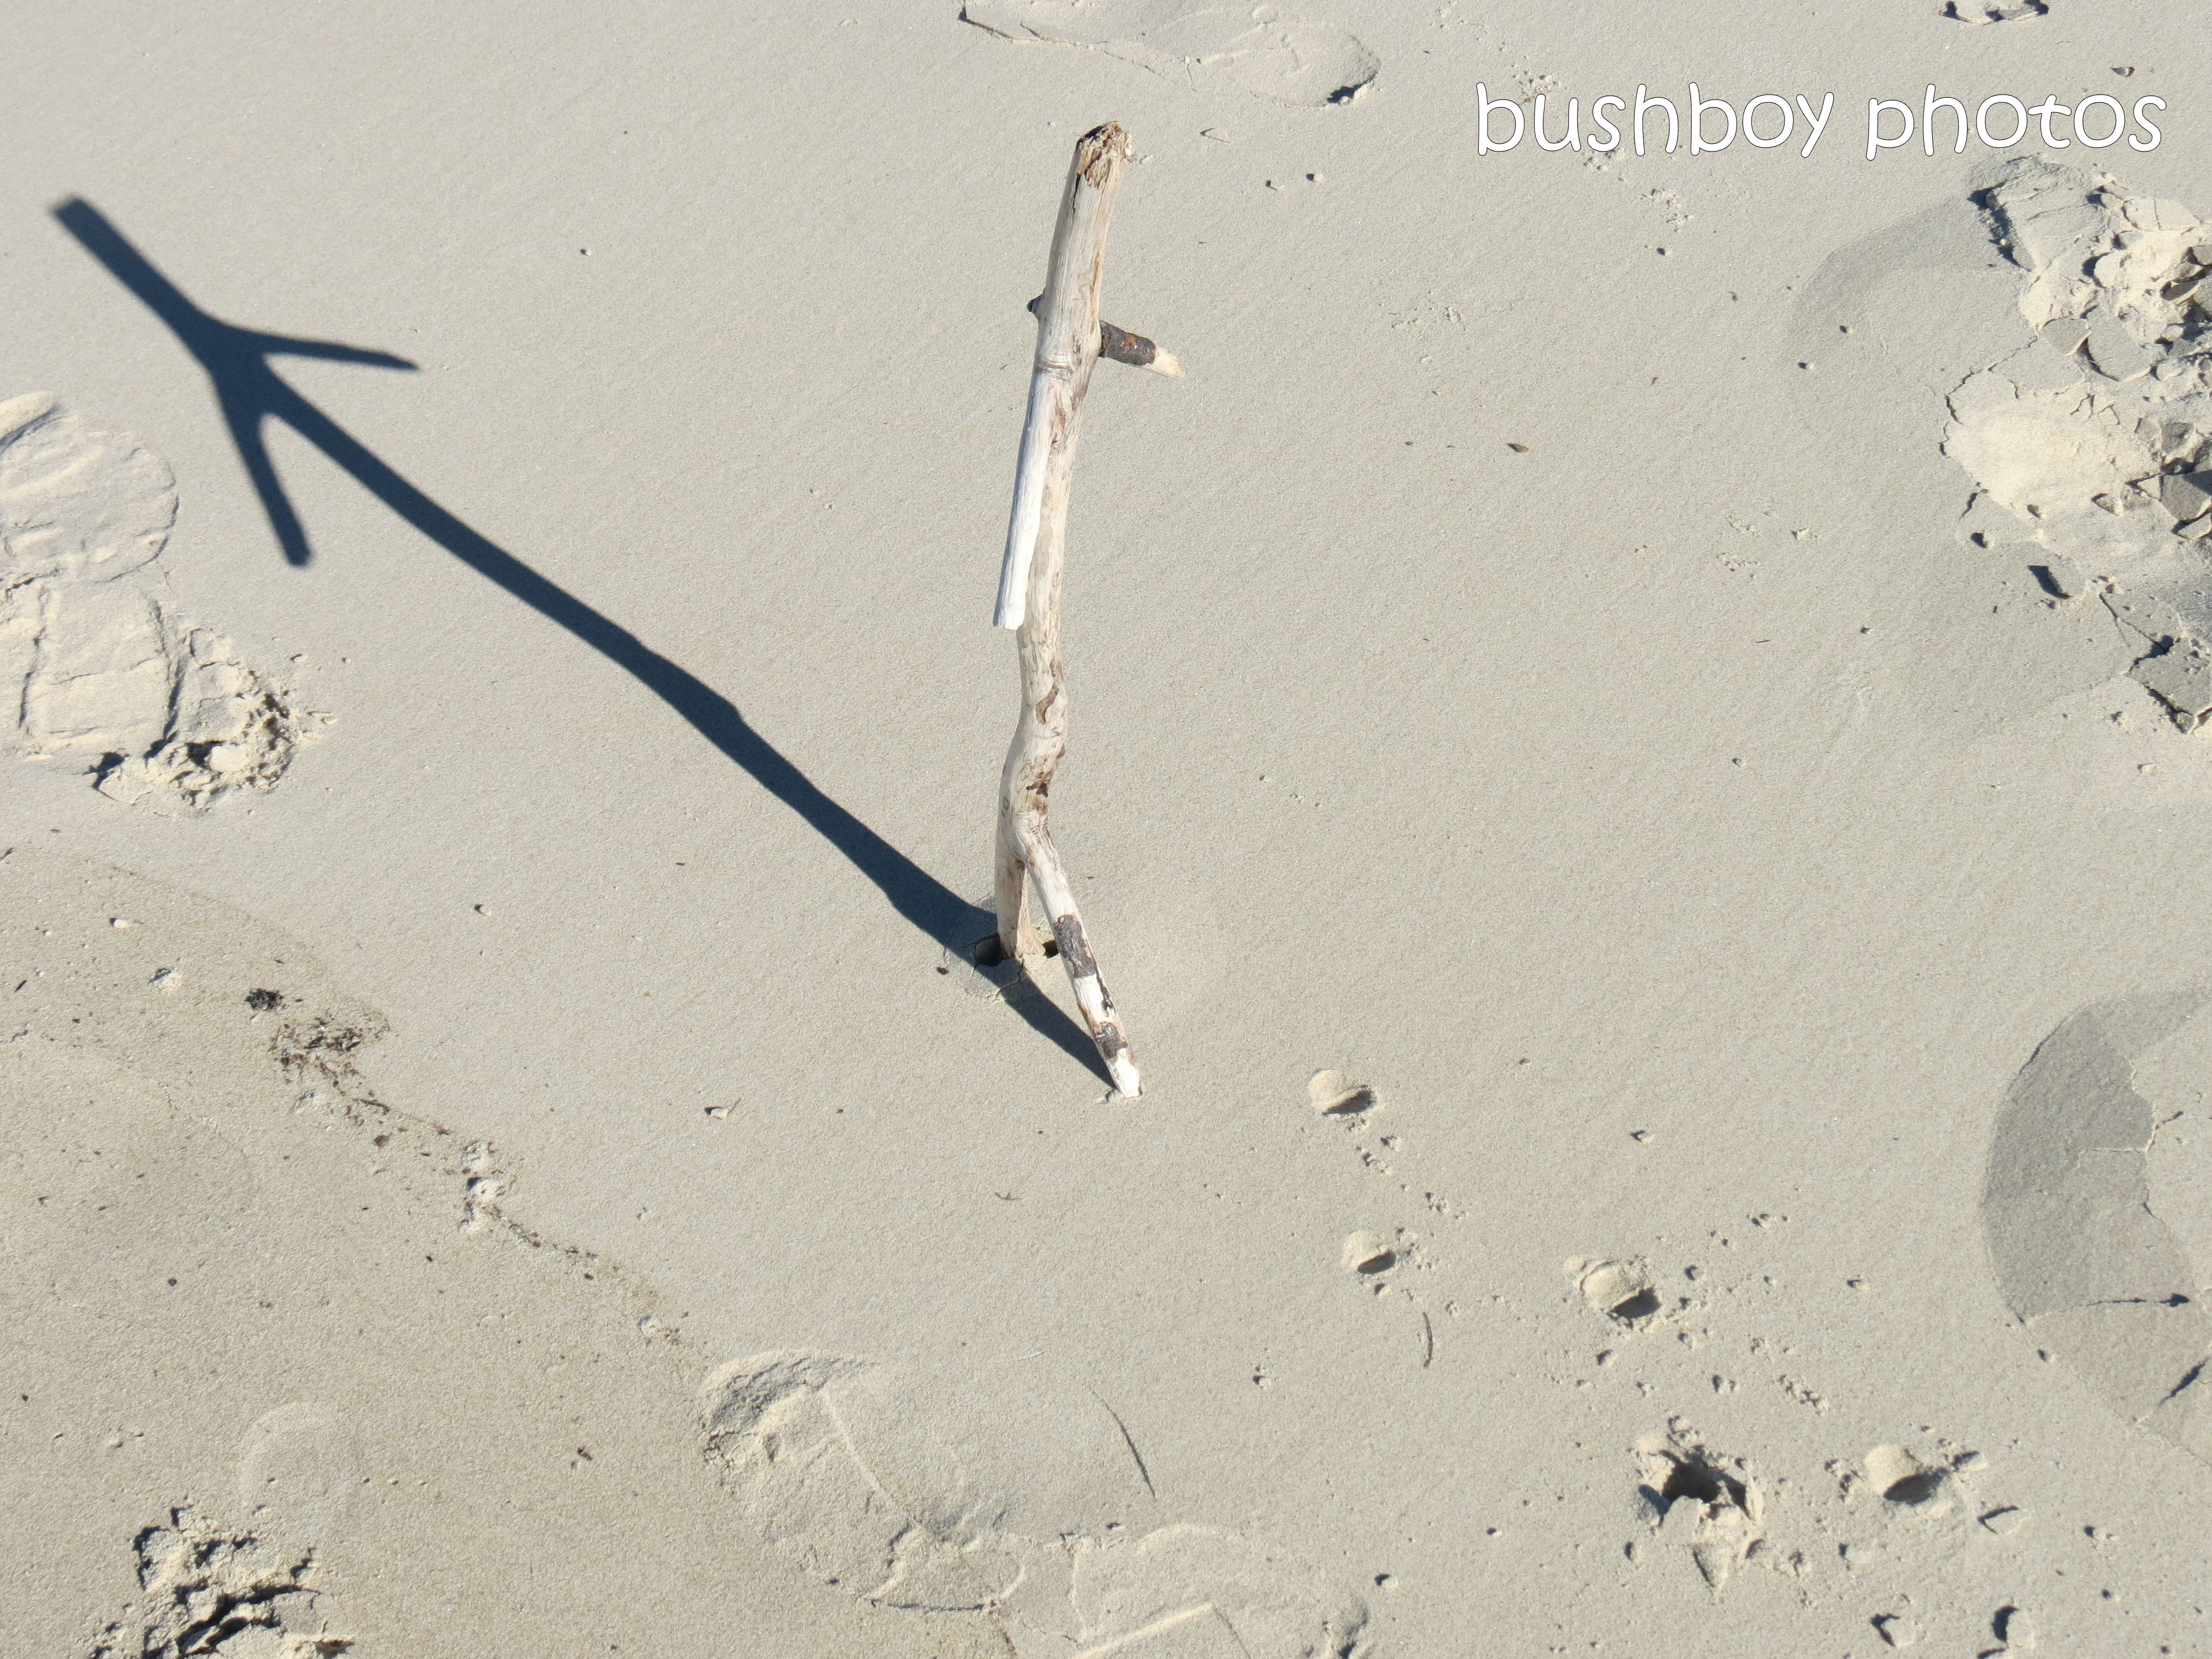 stick figure on beach walking3__named_aug 2012